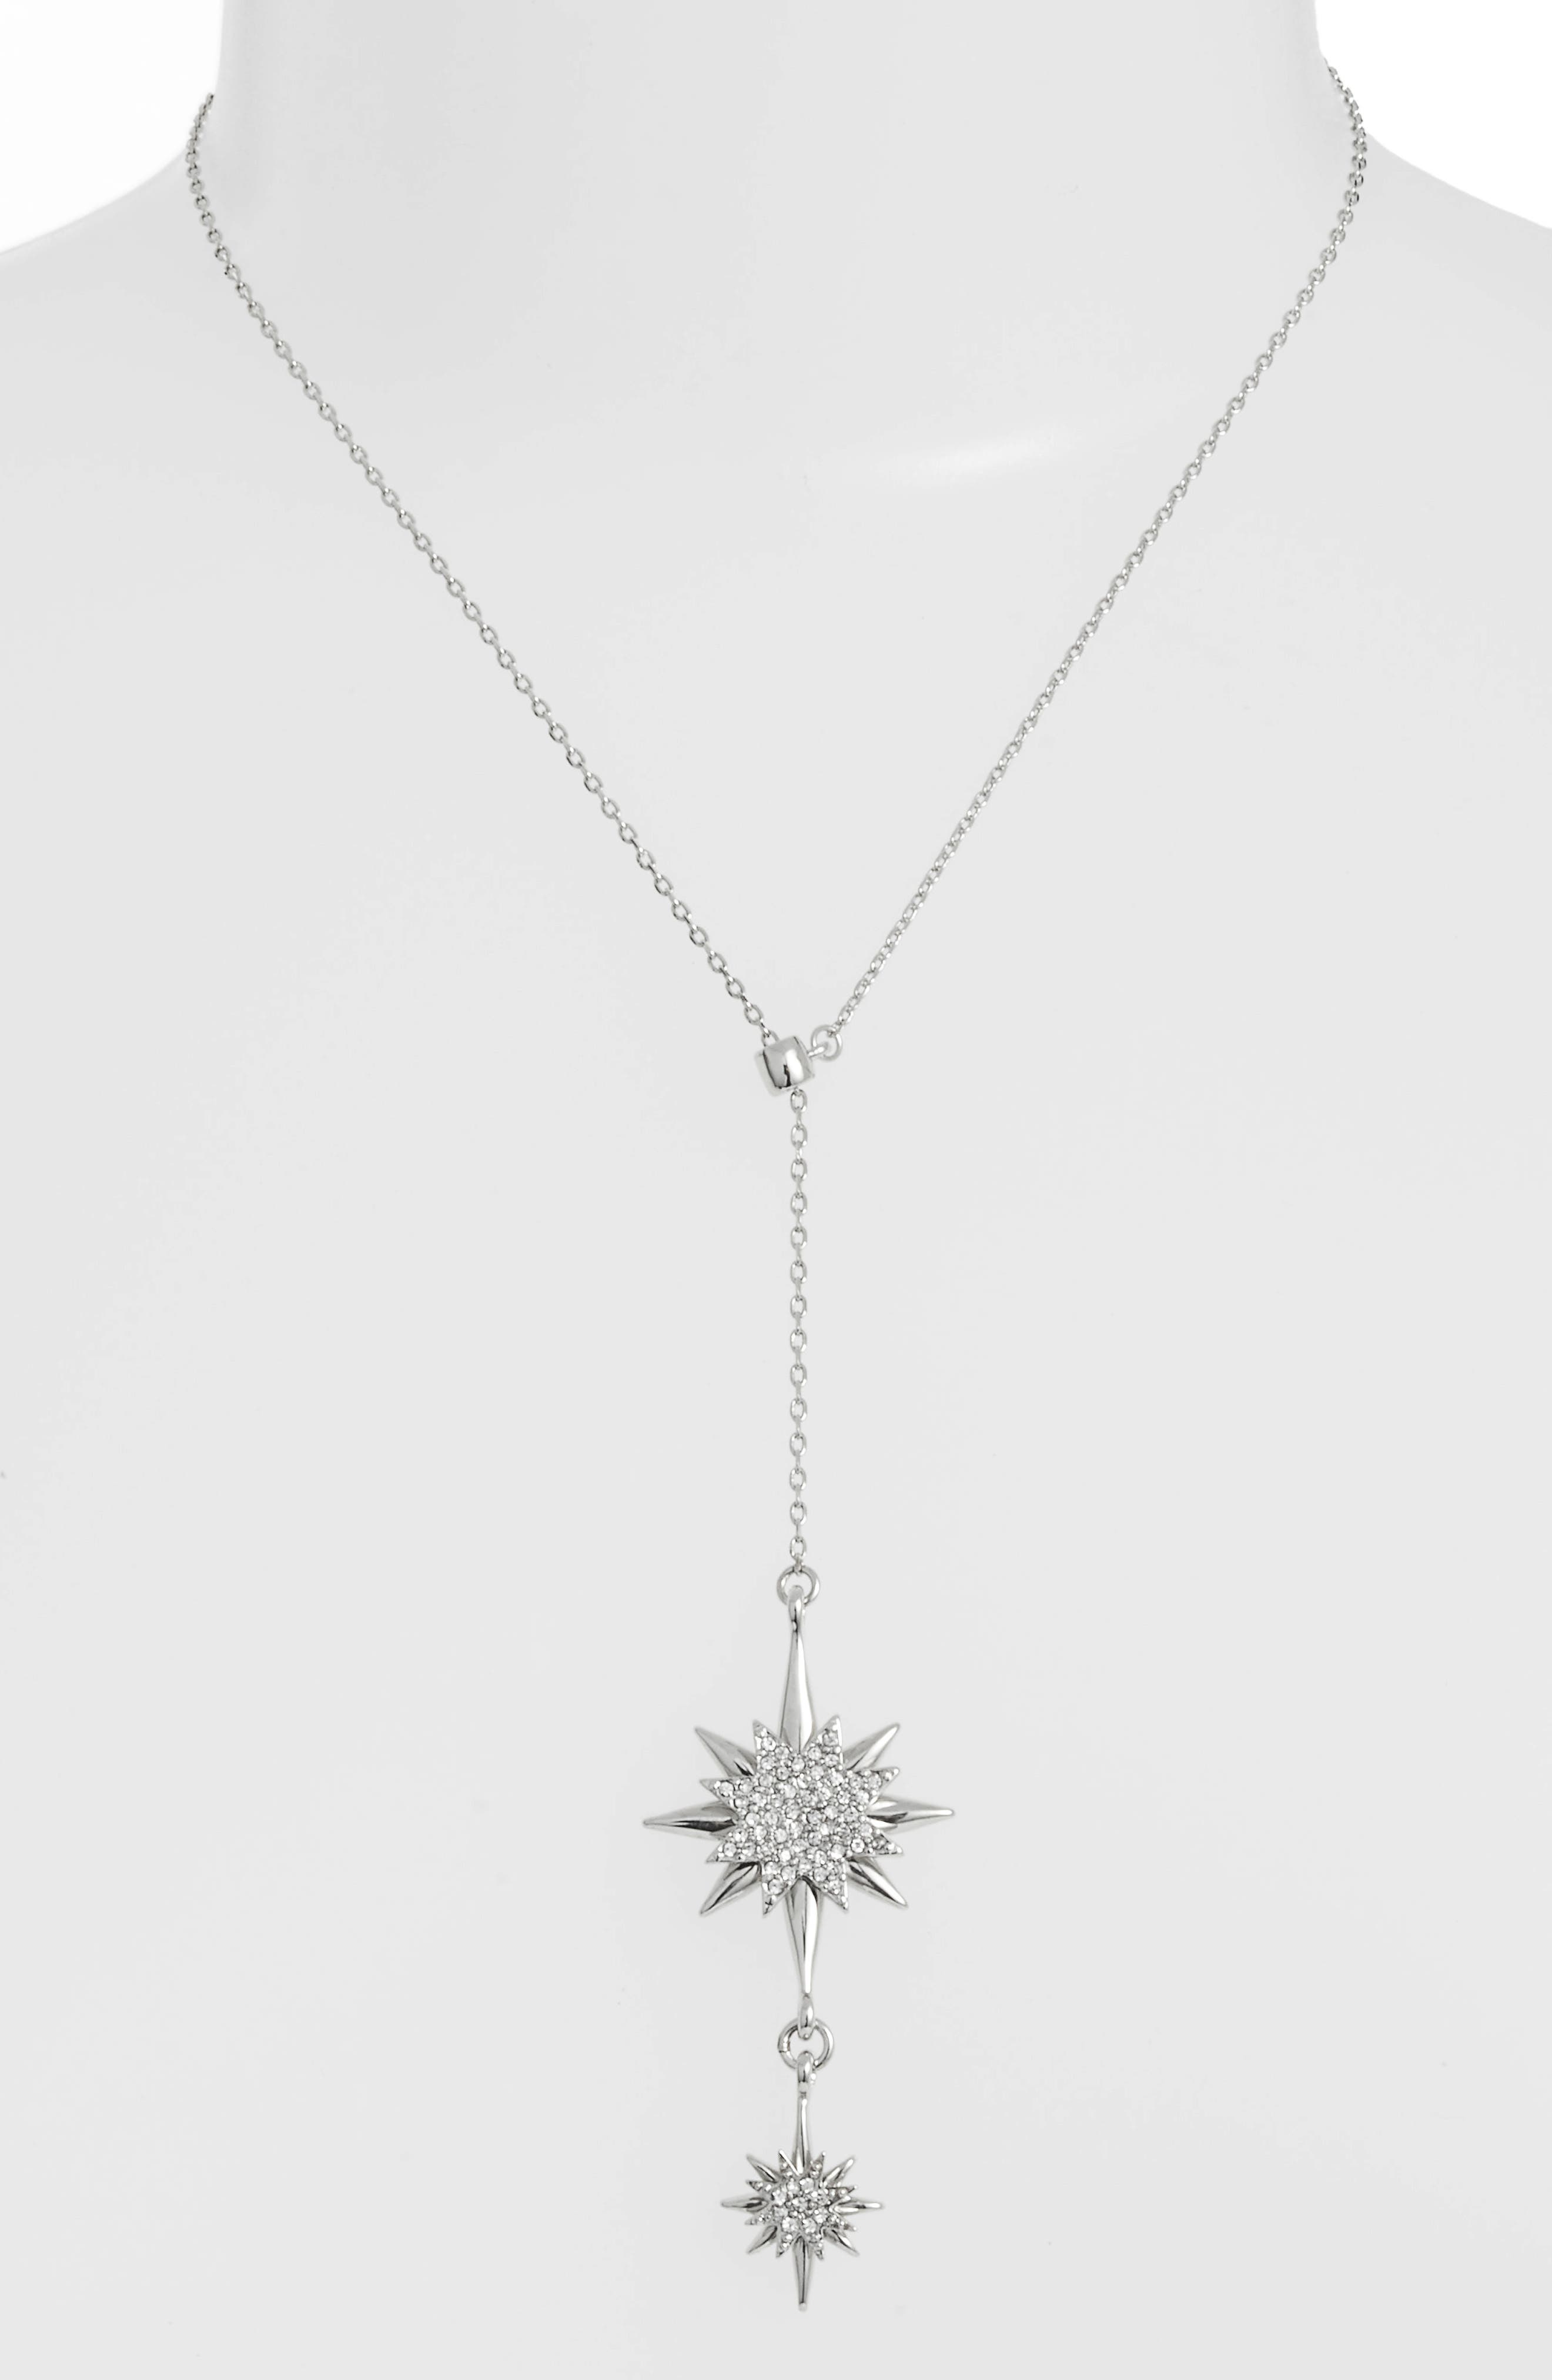 Crystal Starburst Lariat Necklace,                             Main thumbnail 1, color,                             040